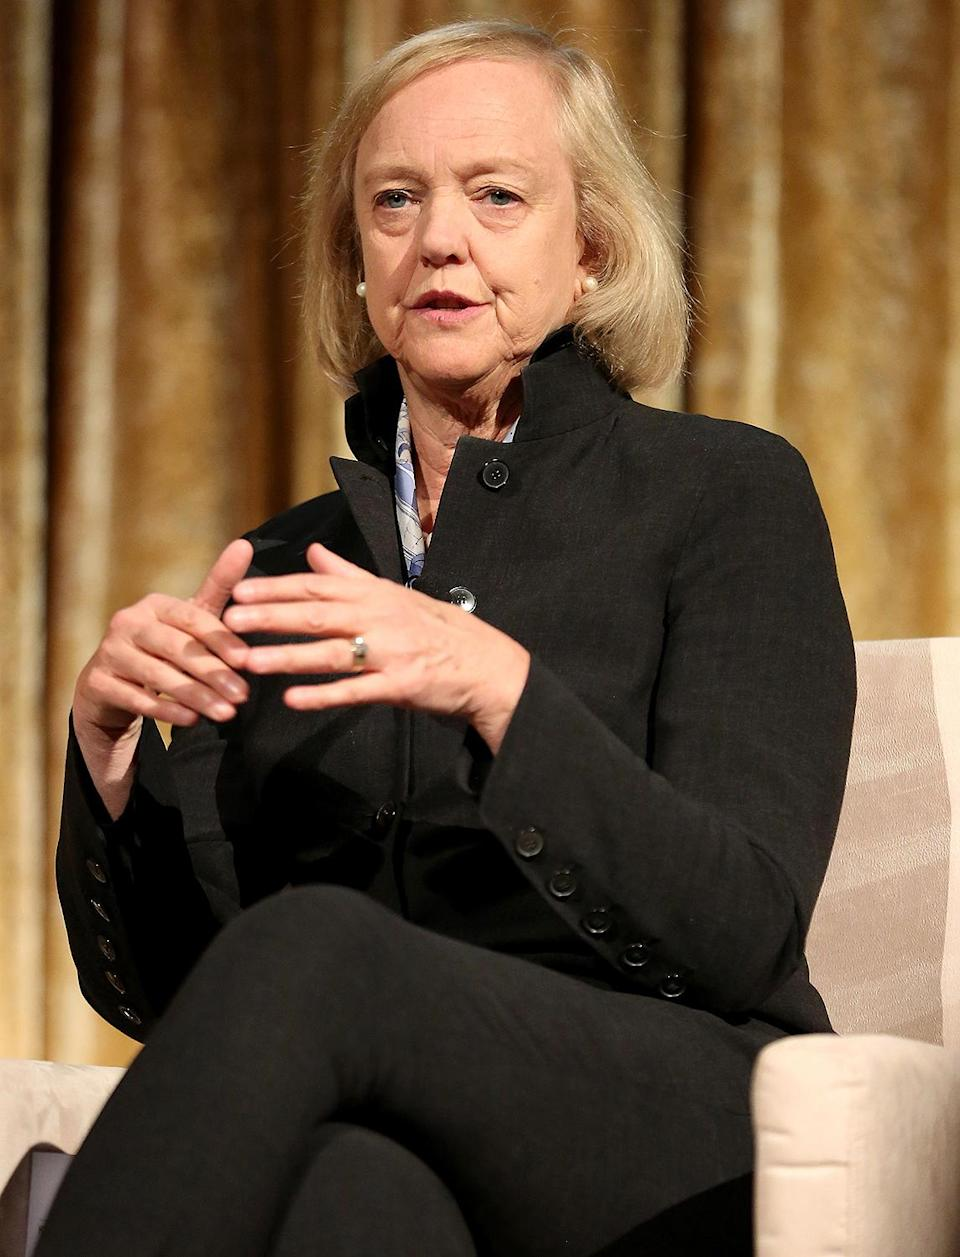 """<p><b>Former president and CEO Hewlett-Packard, former Republican gubernatorial candidate and current CEO of Quibi</b></p> <p>Whitman said during a <a href=""""https://www.youtube.com/watch?v=t1leeTopLAY&feature=emb_logo"""" rel=""""nofollow noopener"""" target=""""_blank"""" data-ylk=""""slk:video at the DNC"""" class=""""link rapid-noclick-resp"""">video at the DNC</a>, """"I'm a longtime Republican and a longtime CEO. And let me tell you, Donald Trump has no clue how to run a business, let alone an economy,""""</p> <p>Whitman said. """"Joe Biden, on the other hand, has a plan that will strengthen our economy for working people and small-business owners. For me, the choice is simple. I'm with Joe.""""</p>"""